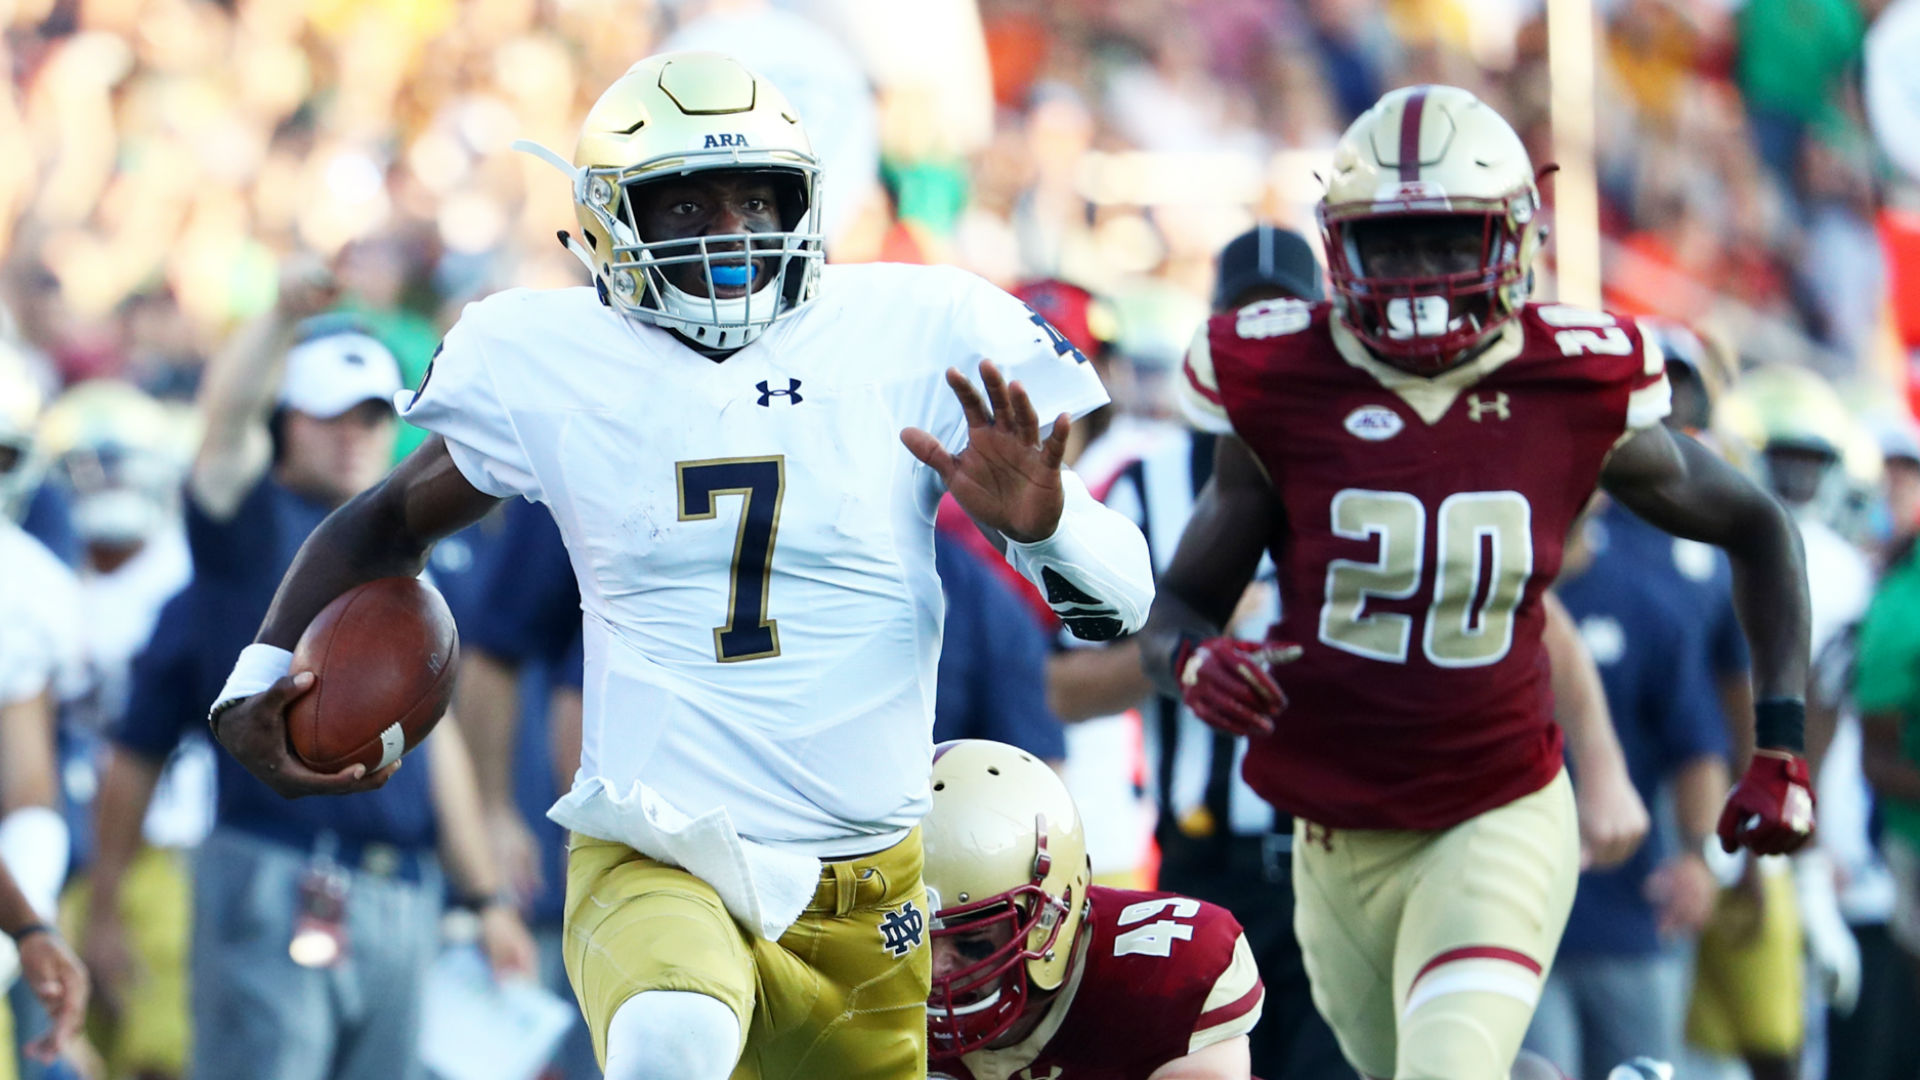 Notre Dame QB Brandon Wimbush in walking boot with right foot injury